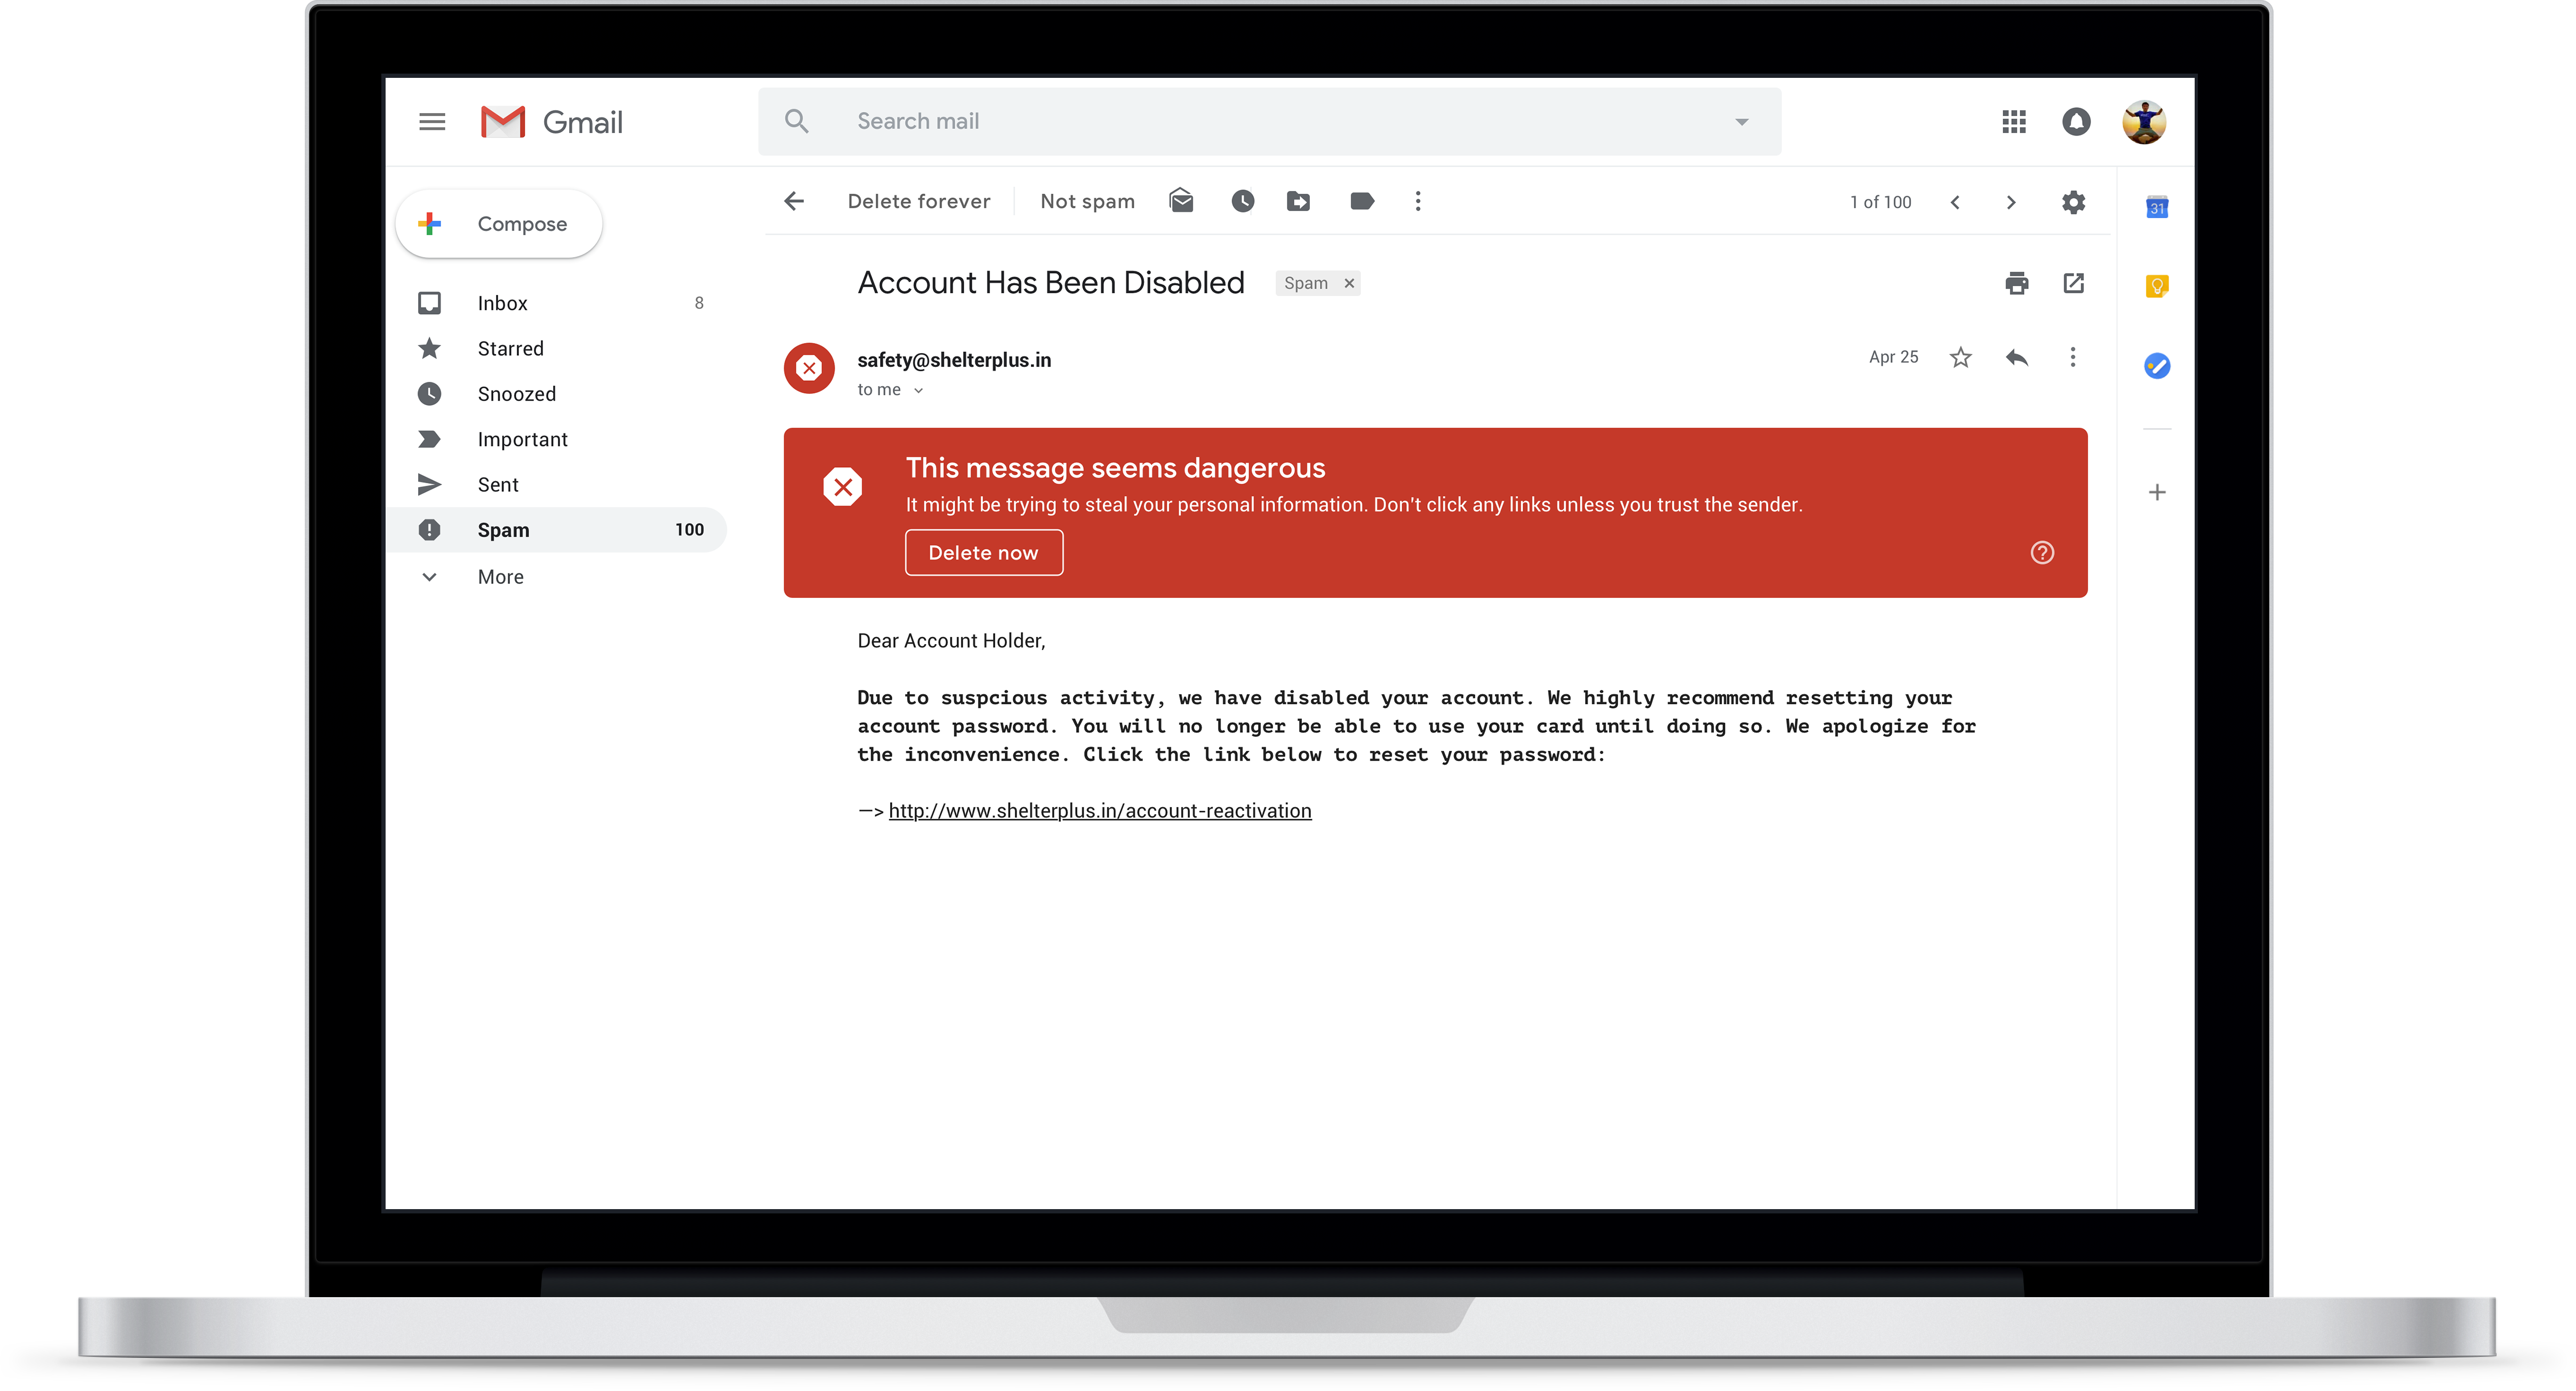 gmail's new, more assertive security warnings